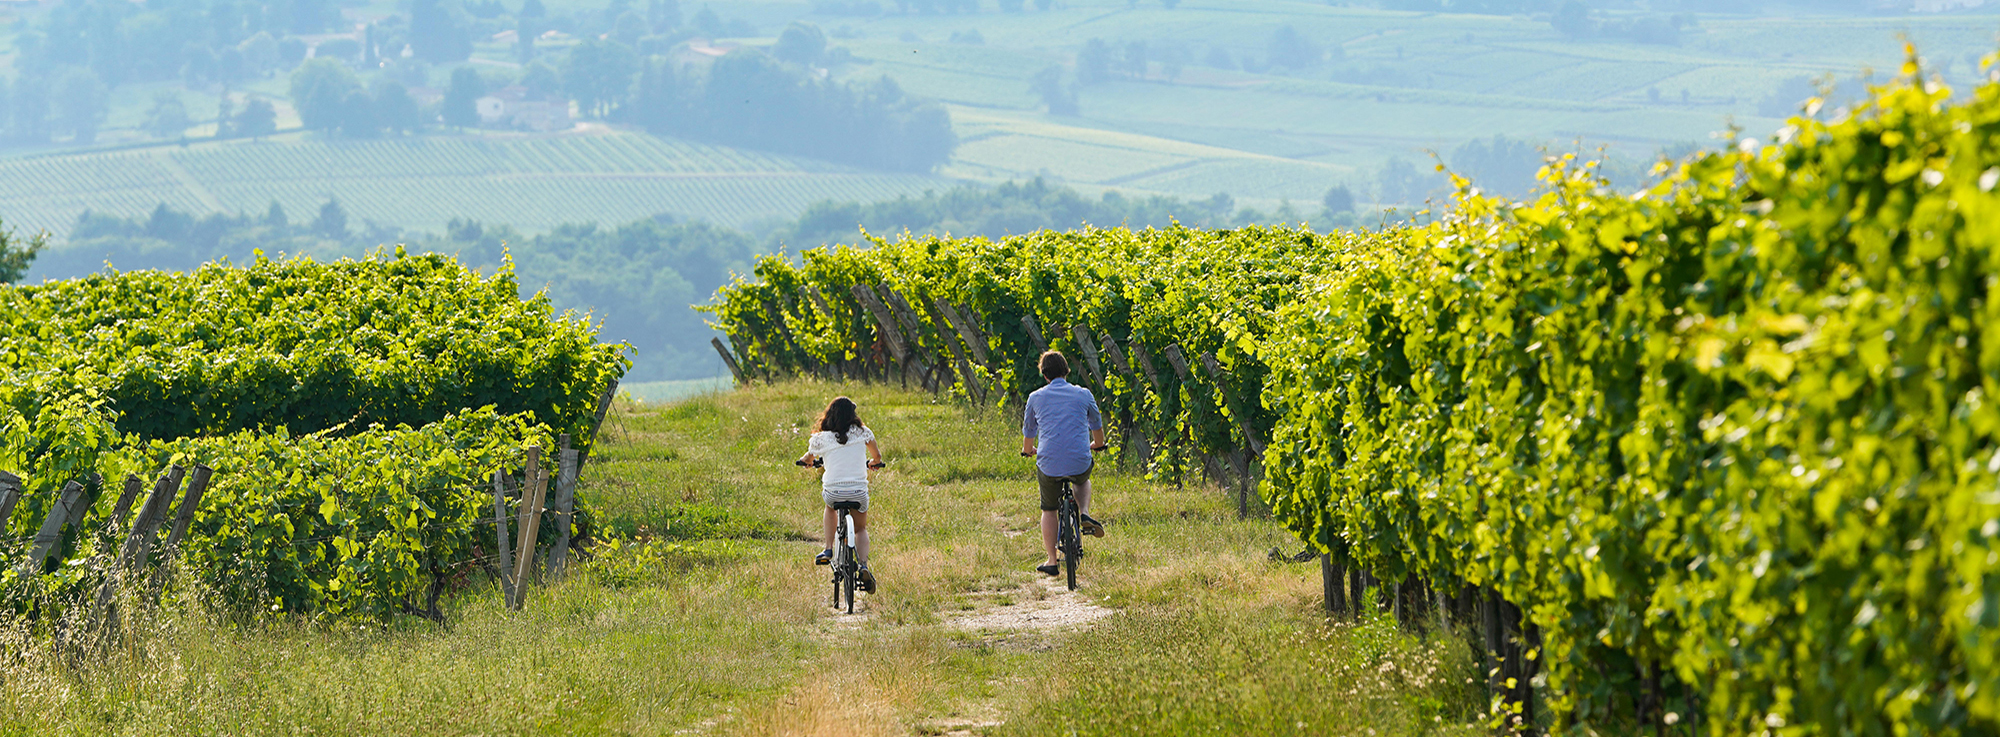 Bordeaux by bike: A weekend cycling through the vineyards